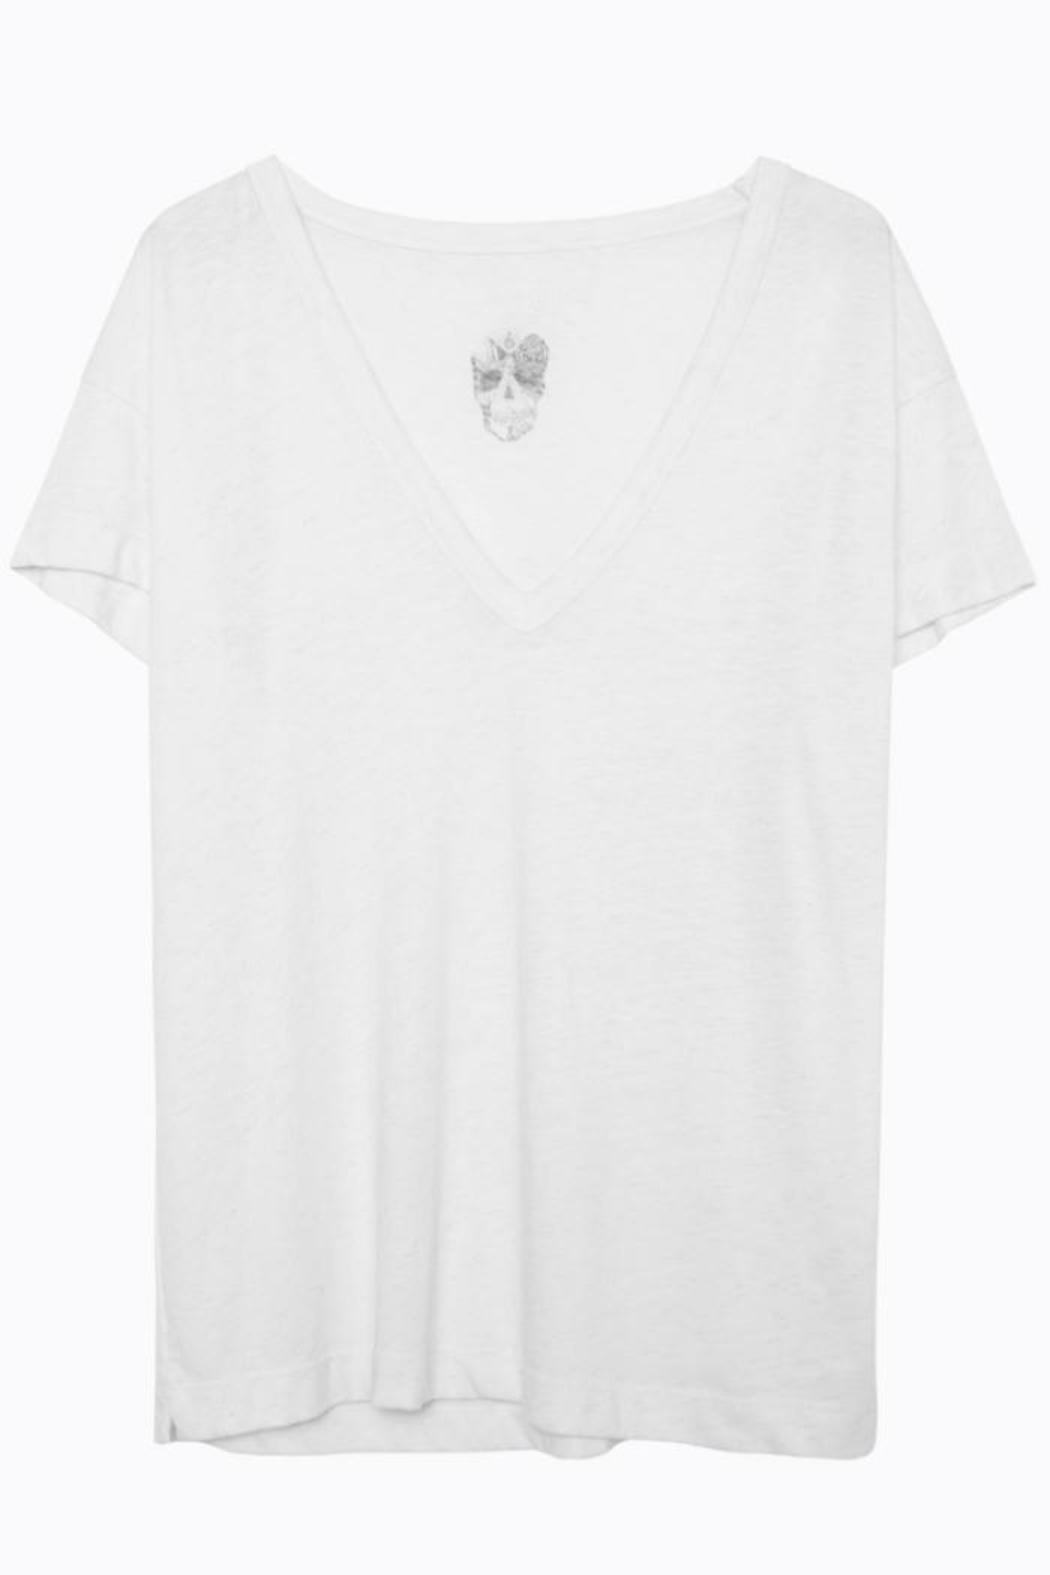 Zadig & Voltaire Wass Burn Tee - Front Cropped Image